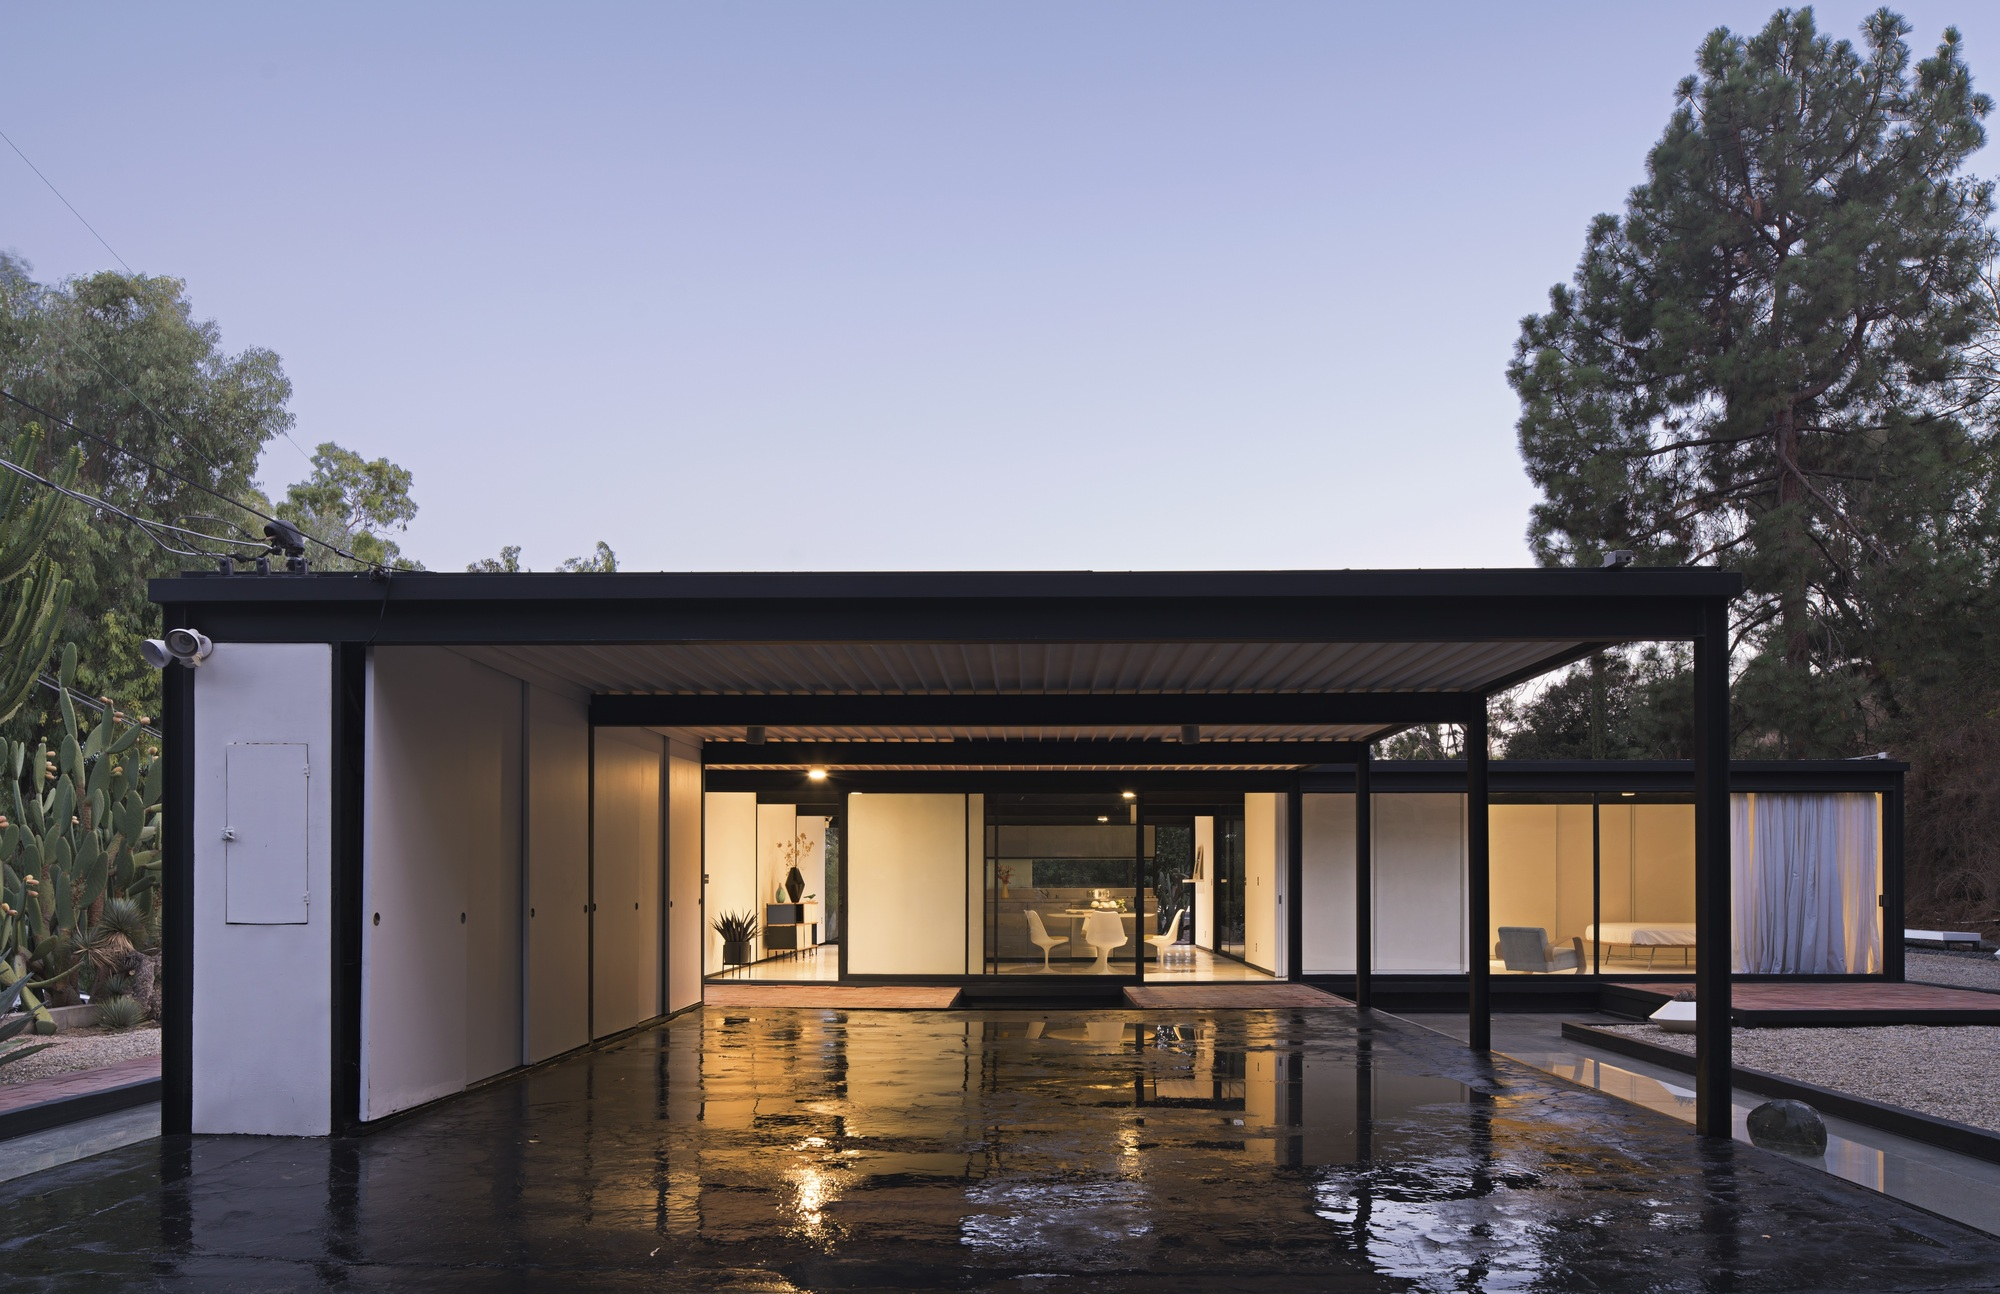 Pierre Koenigu0027s Historic Case Study House 21